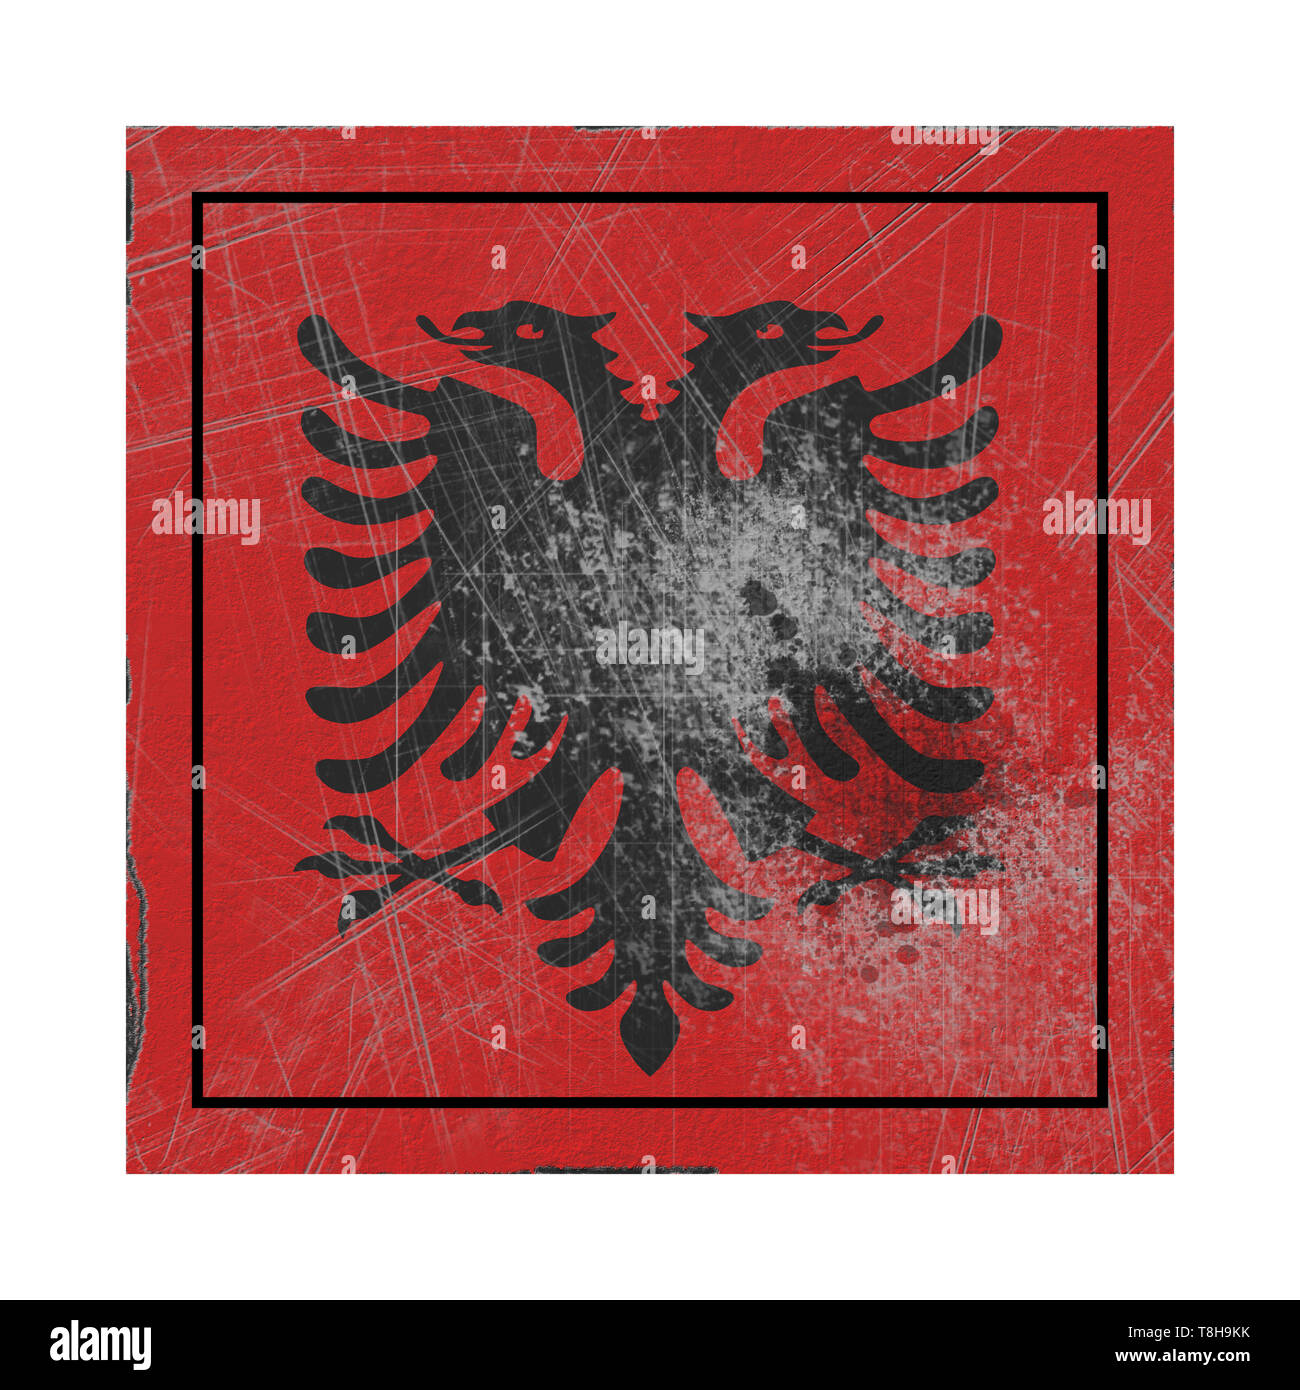 3d rendering of an Albania country flag on a rusty surface - Stock Image